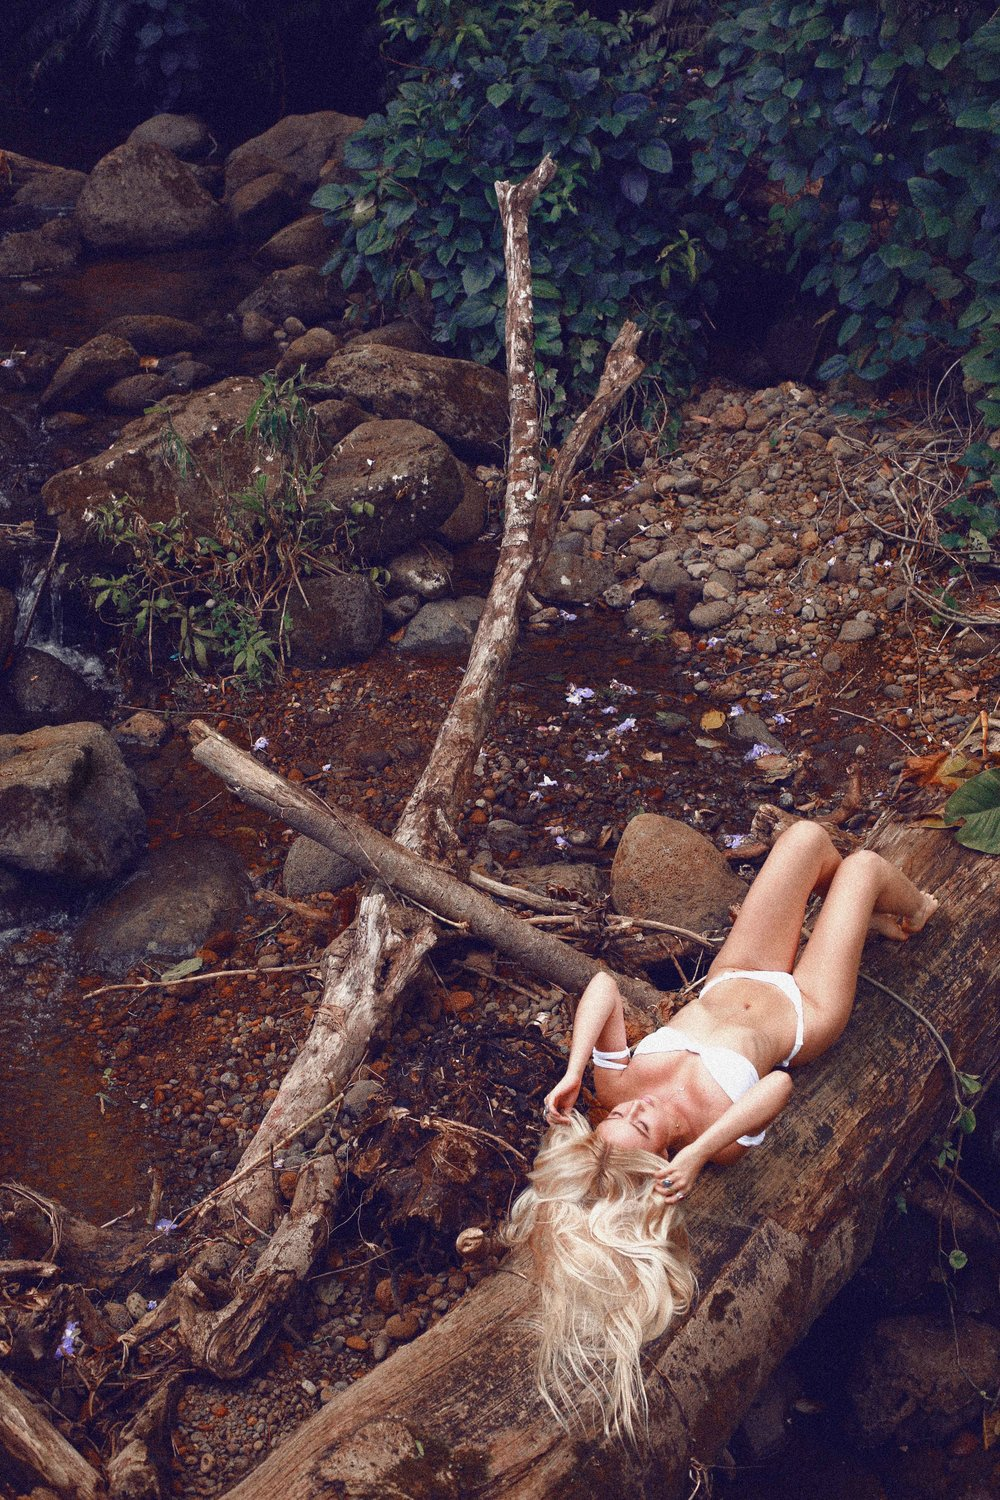 @Kelly.lauren Bikini Shoot in Manoa Falls, Hawaii - A Photo Shoot Story by Alyssa Risley - IG @alyssarisley